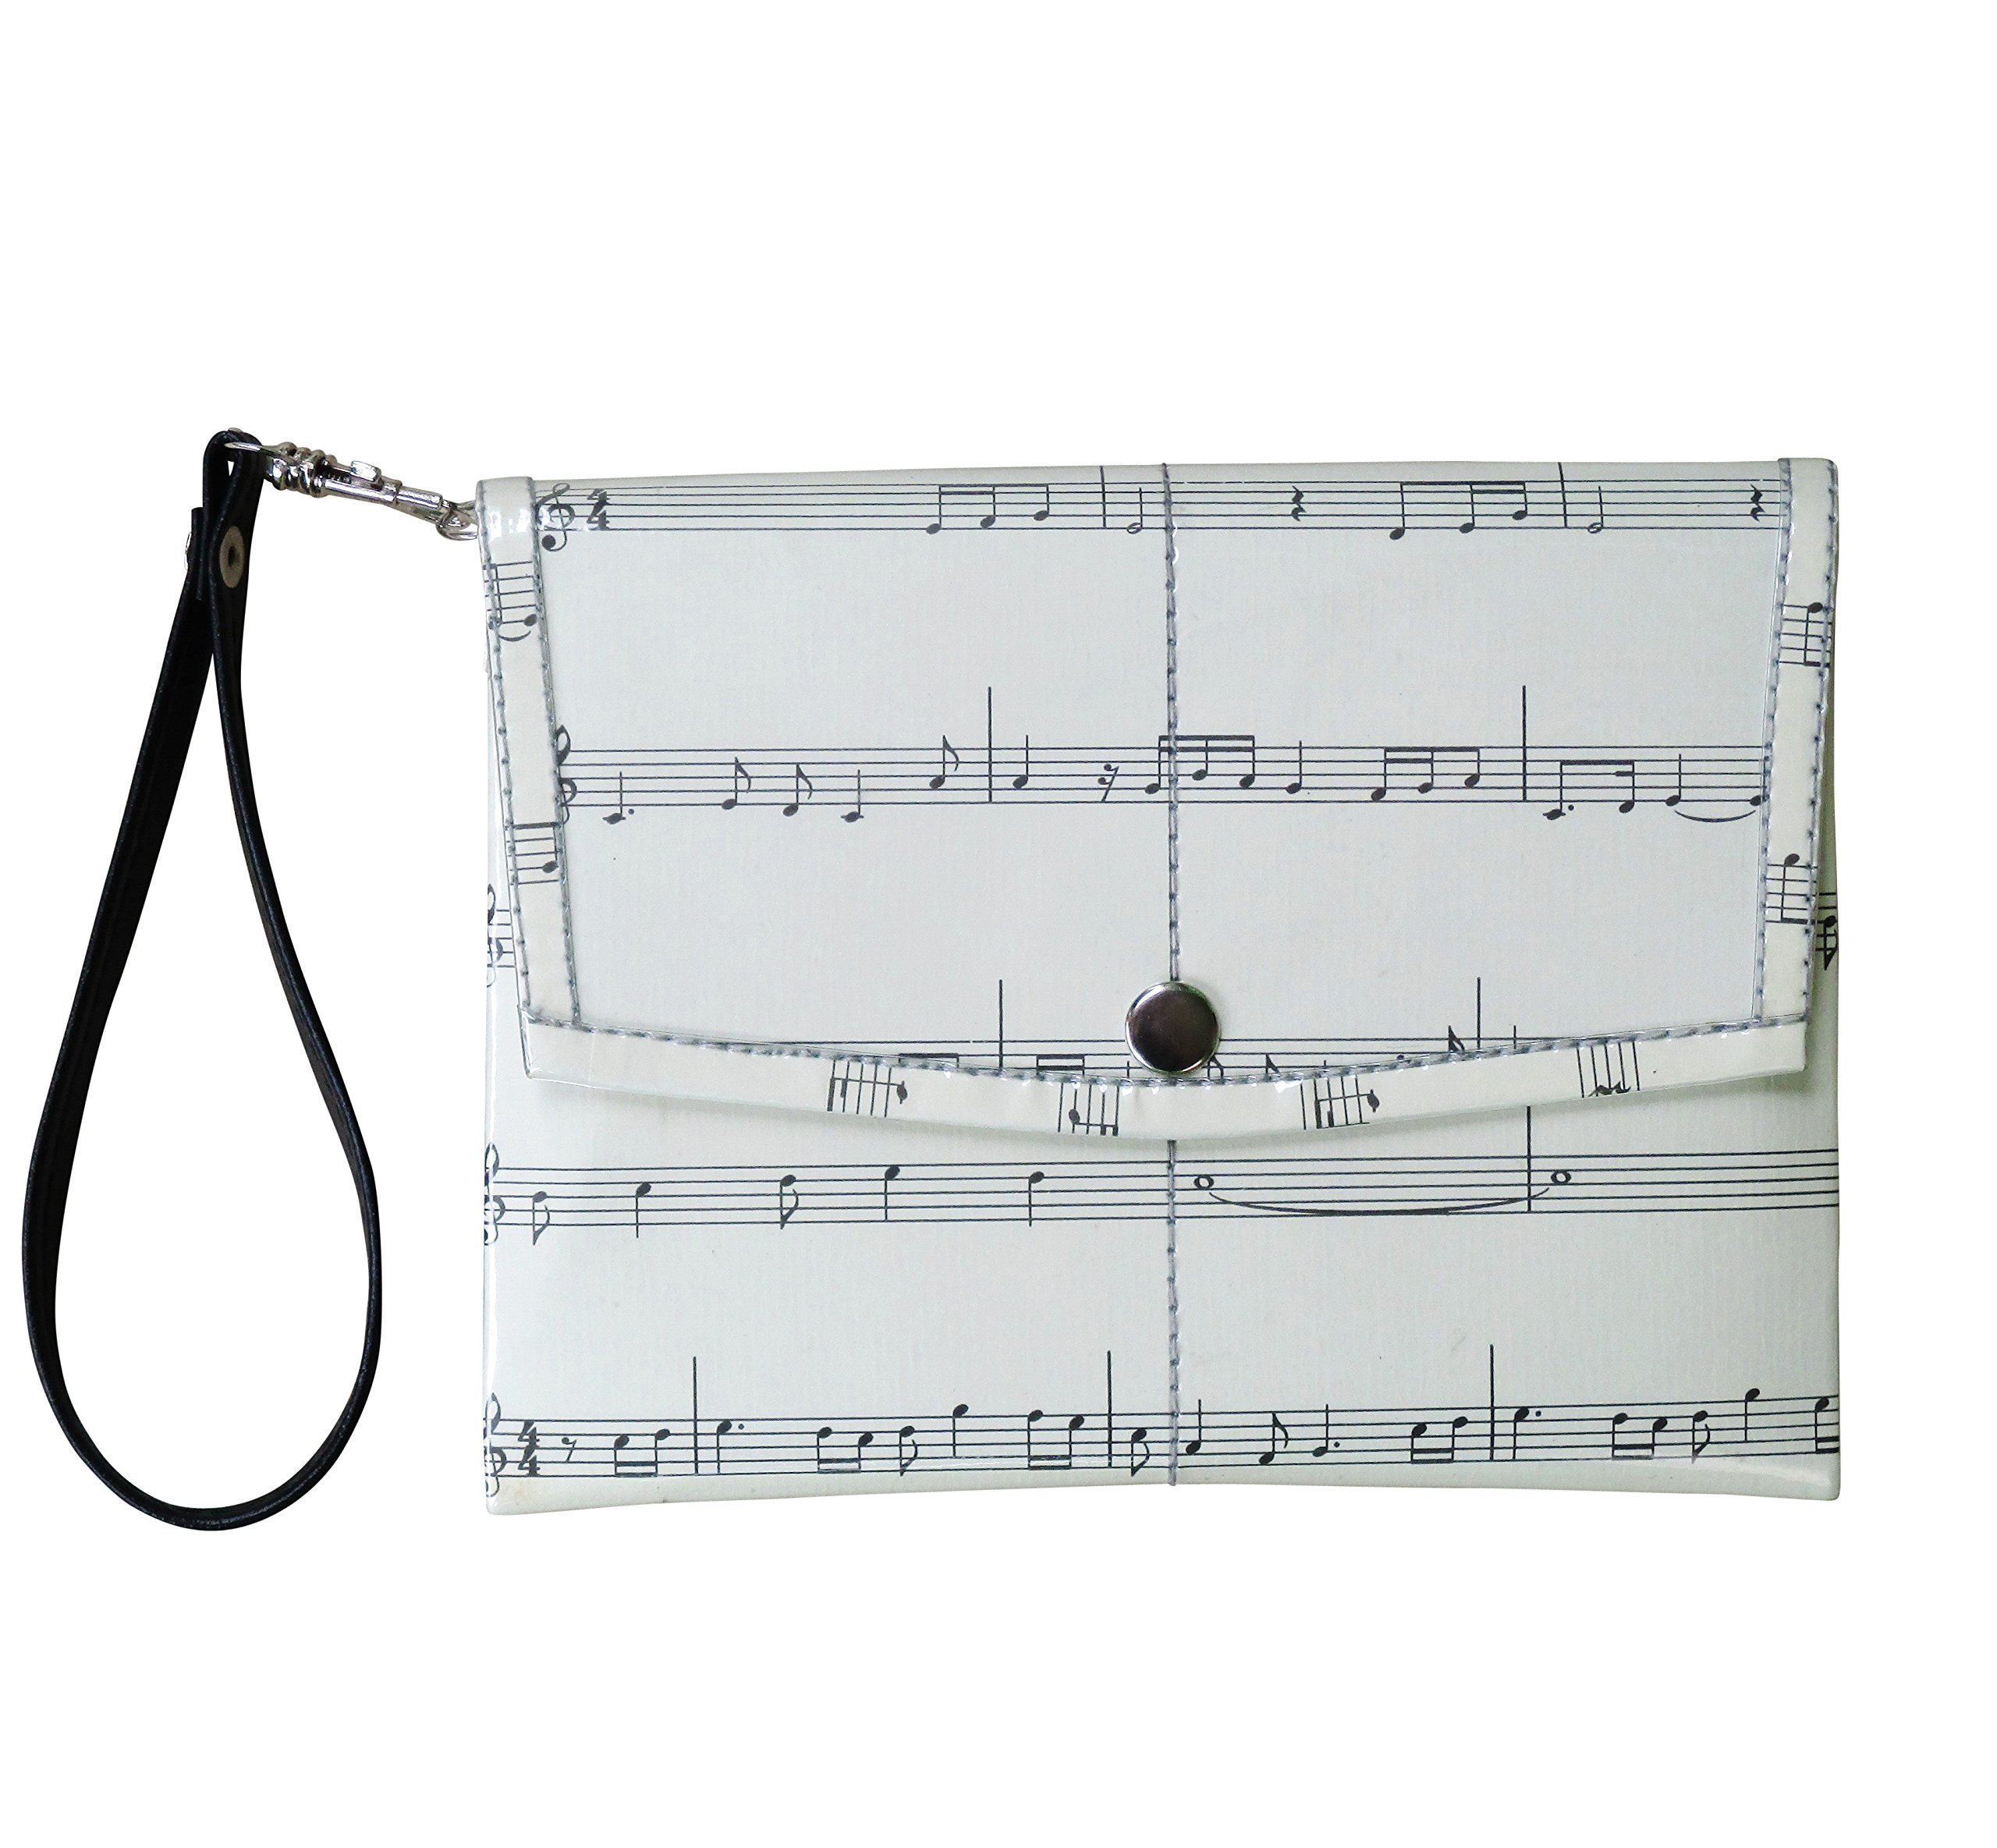 Small snap wristlet for music lovers - FREE SHIPPING - upcycled eco friendly vegan recycled reclaimed salvaged handmade unique purse gift for musician purse wallet musical note scores pianist by Upcycling by Milo